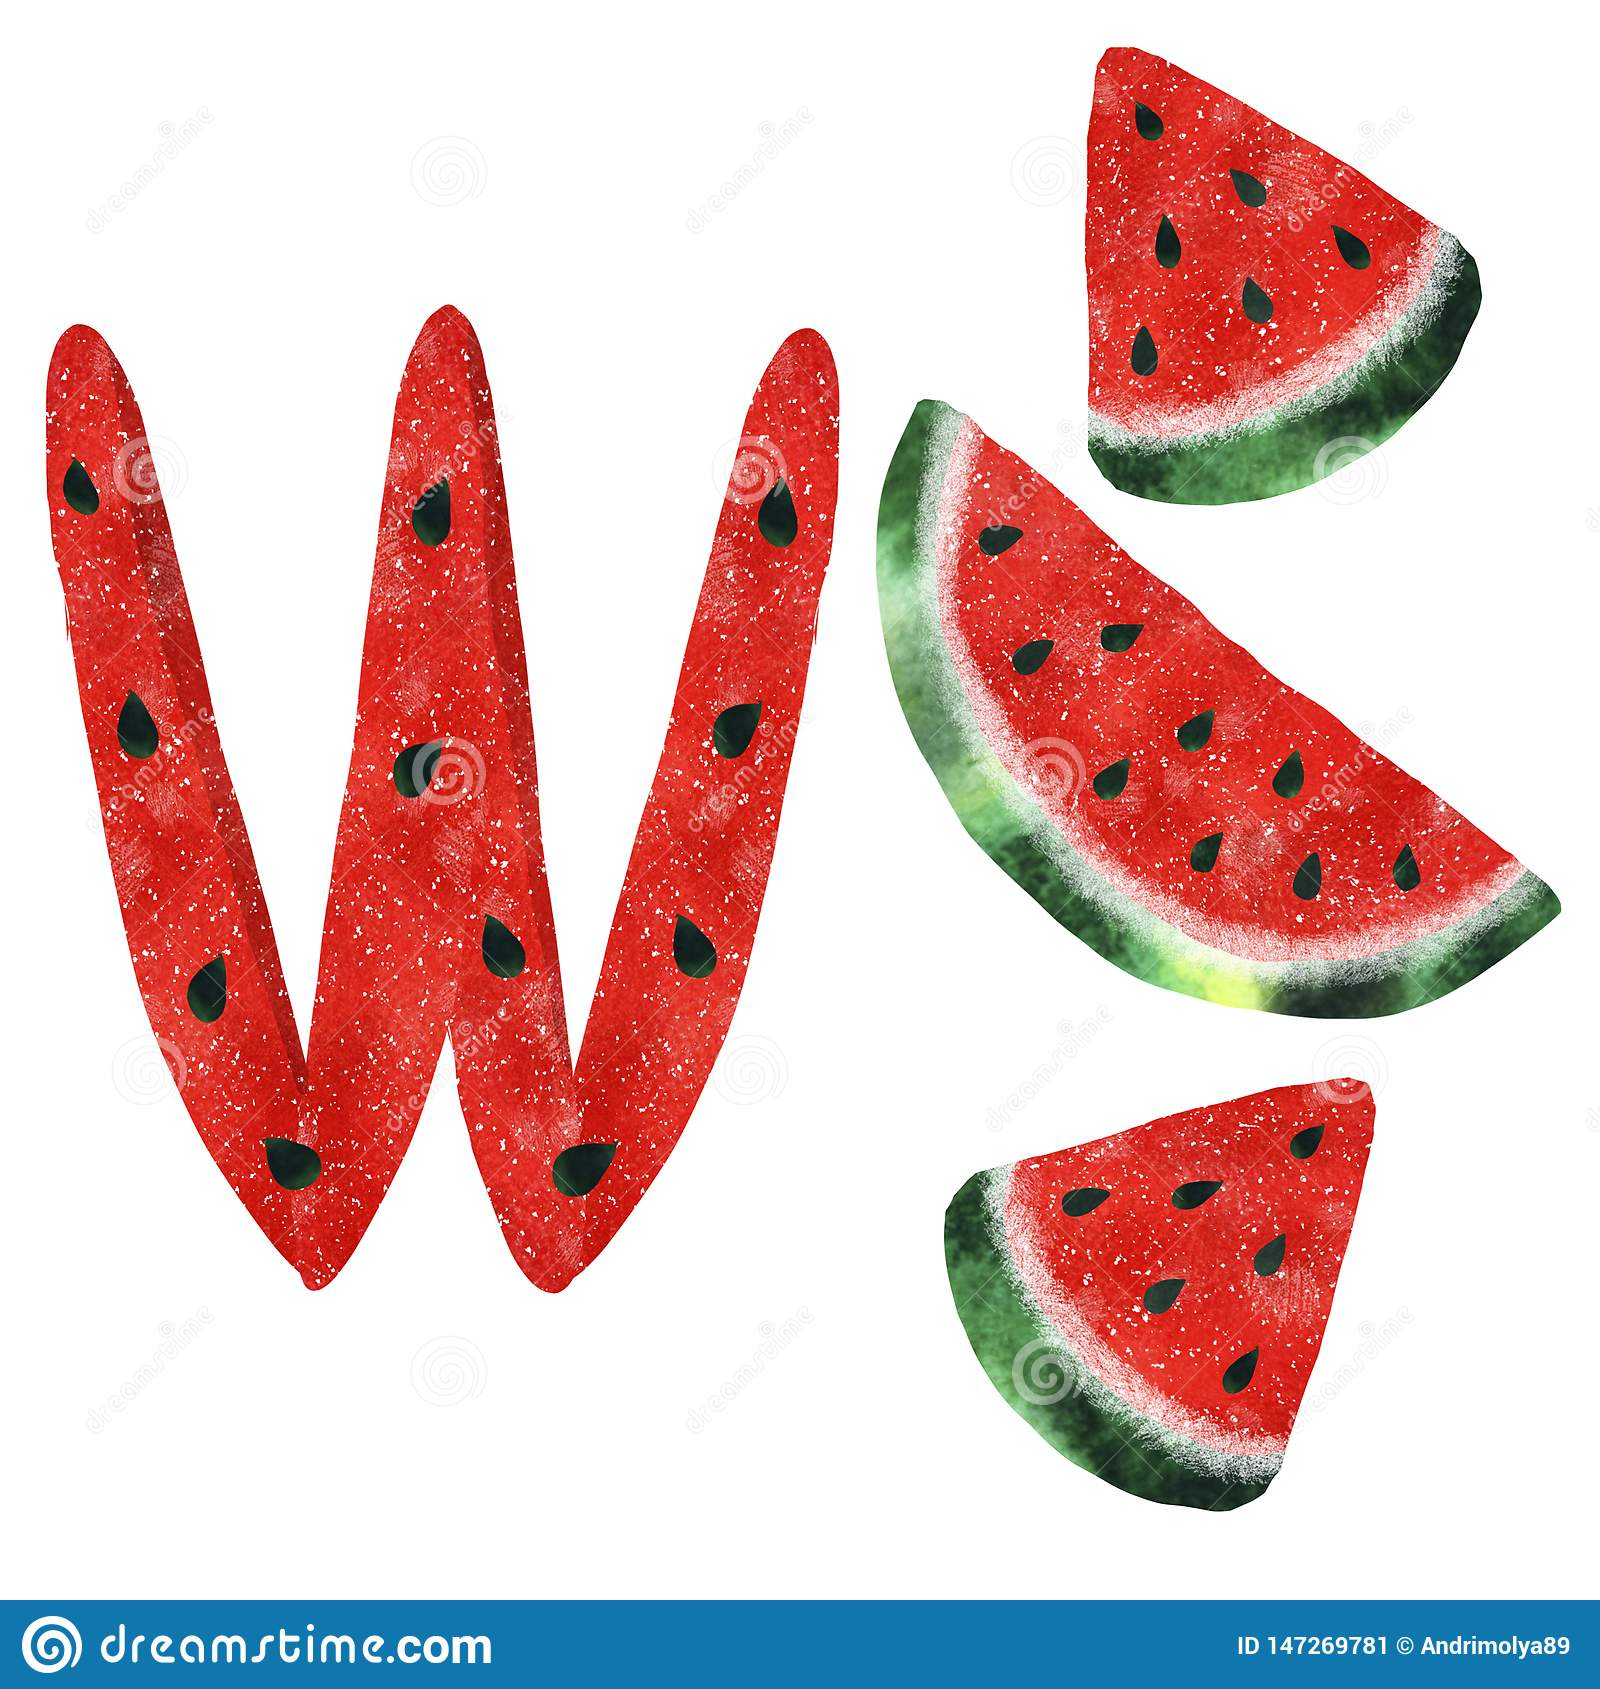 Illustration with watercolor watermelon